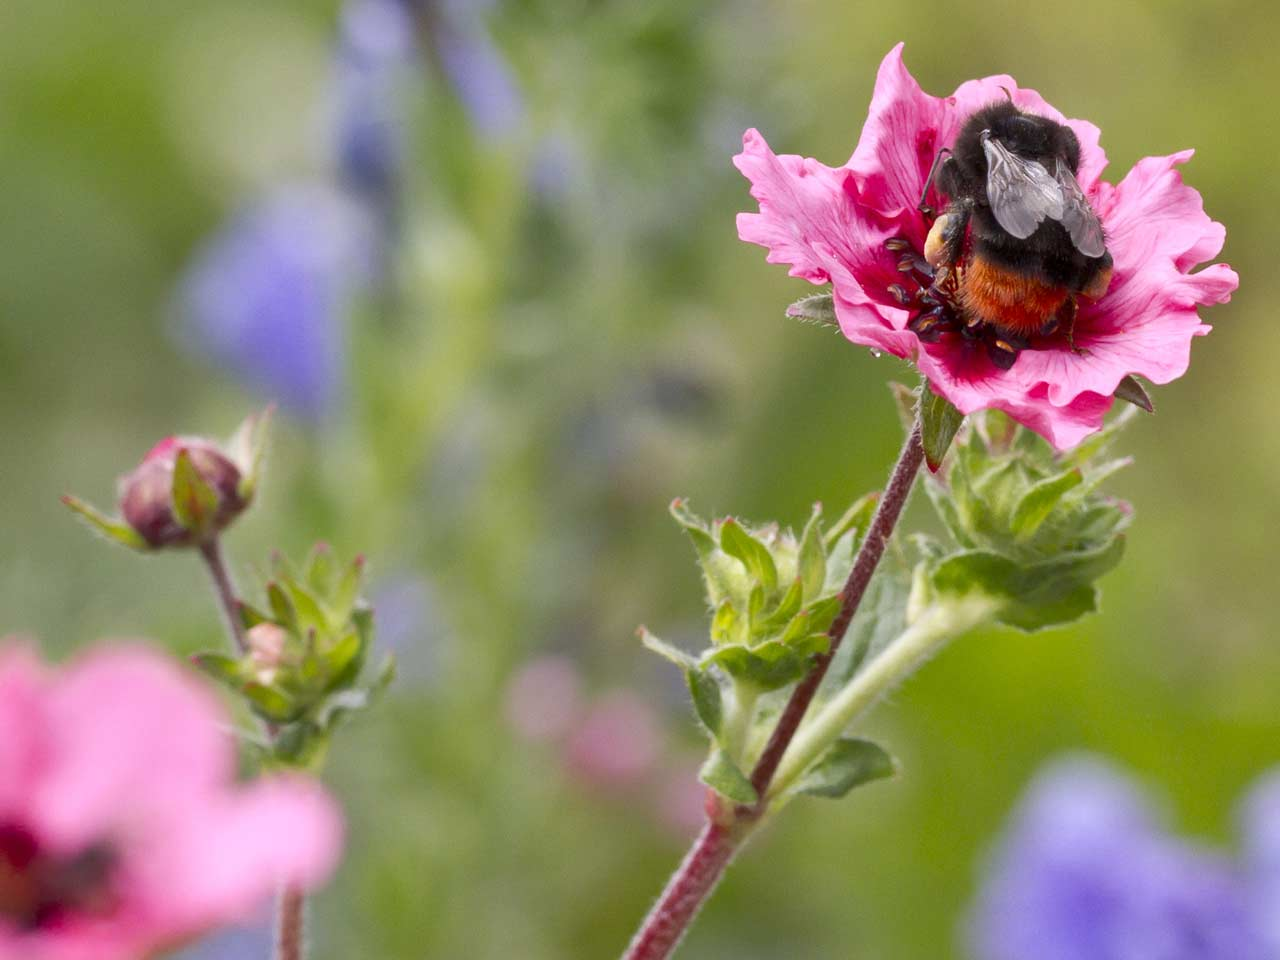 Red-tailed bumblebee worker